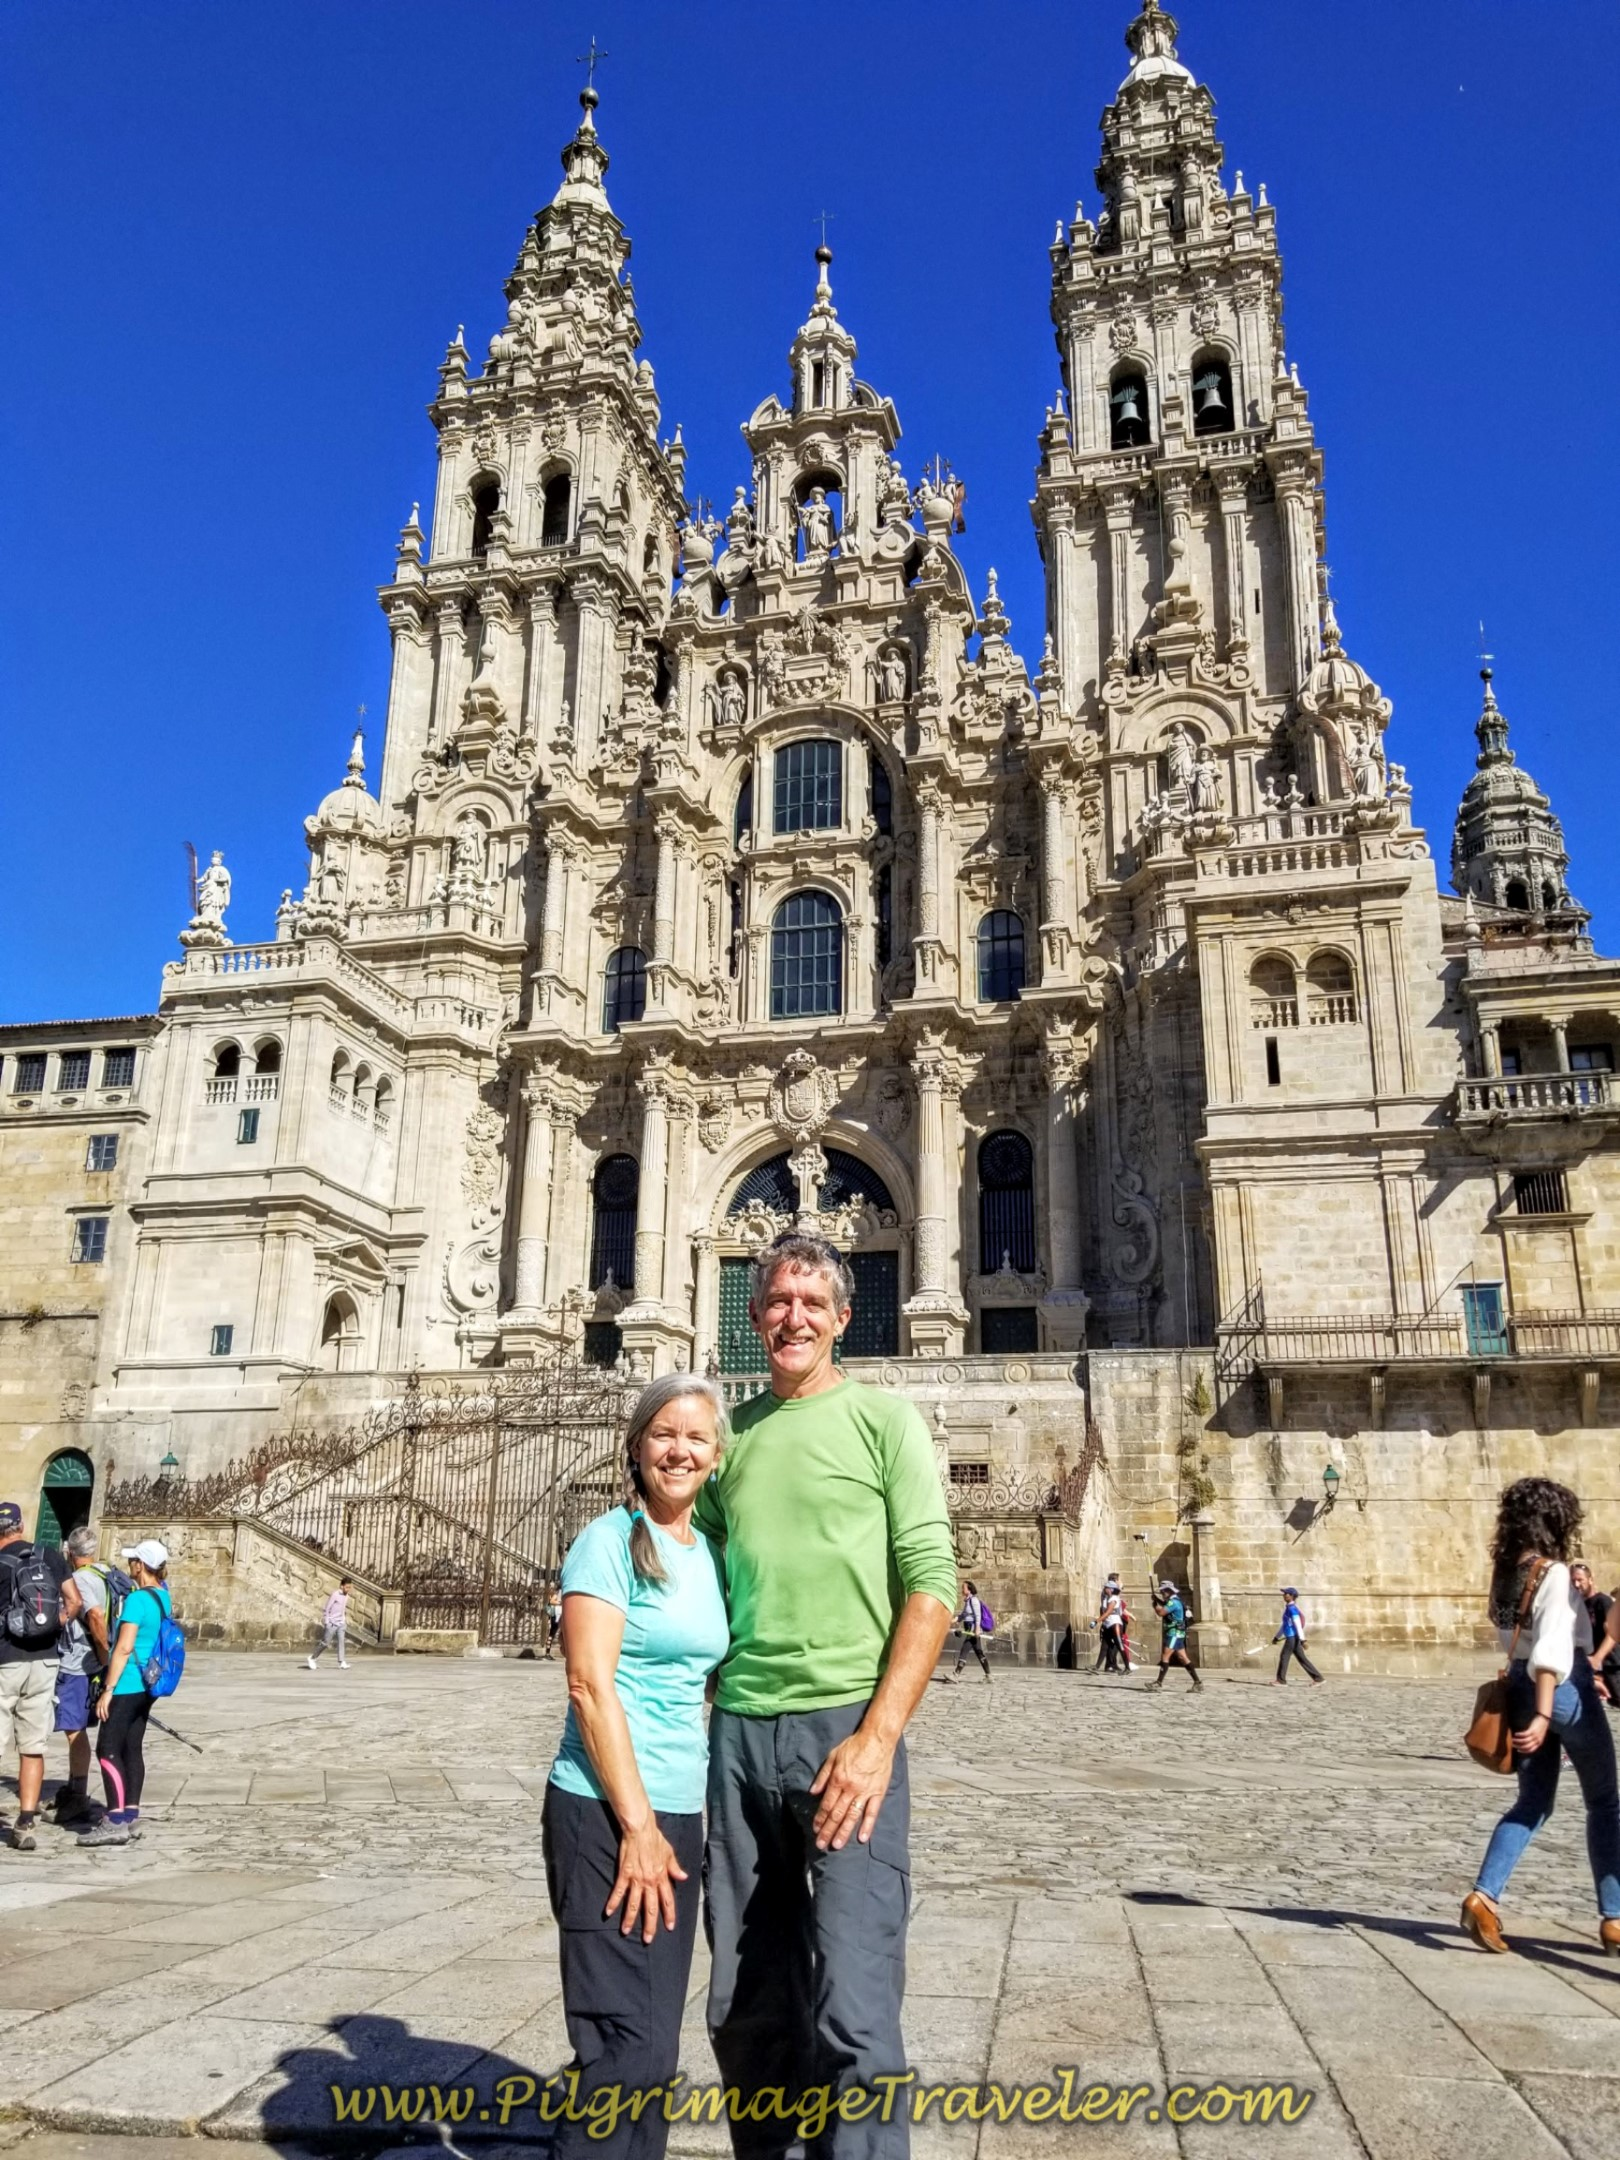 Rich and Elle at the Cathedral of Santiago de Compostela